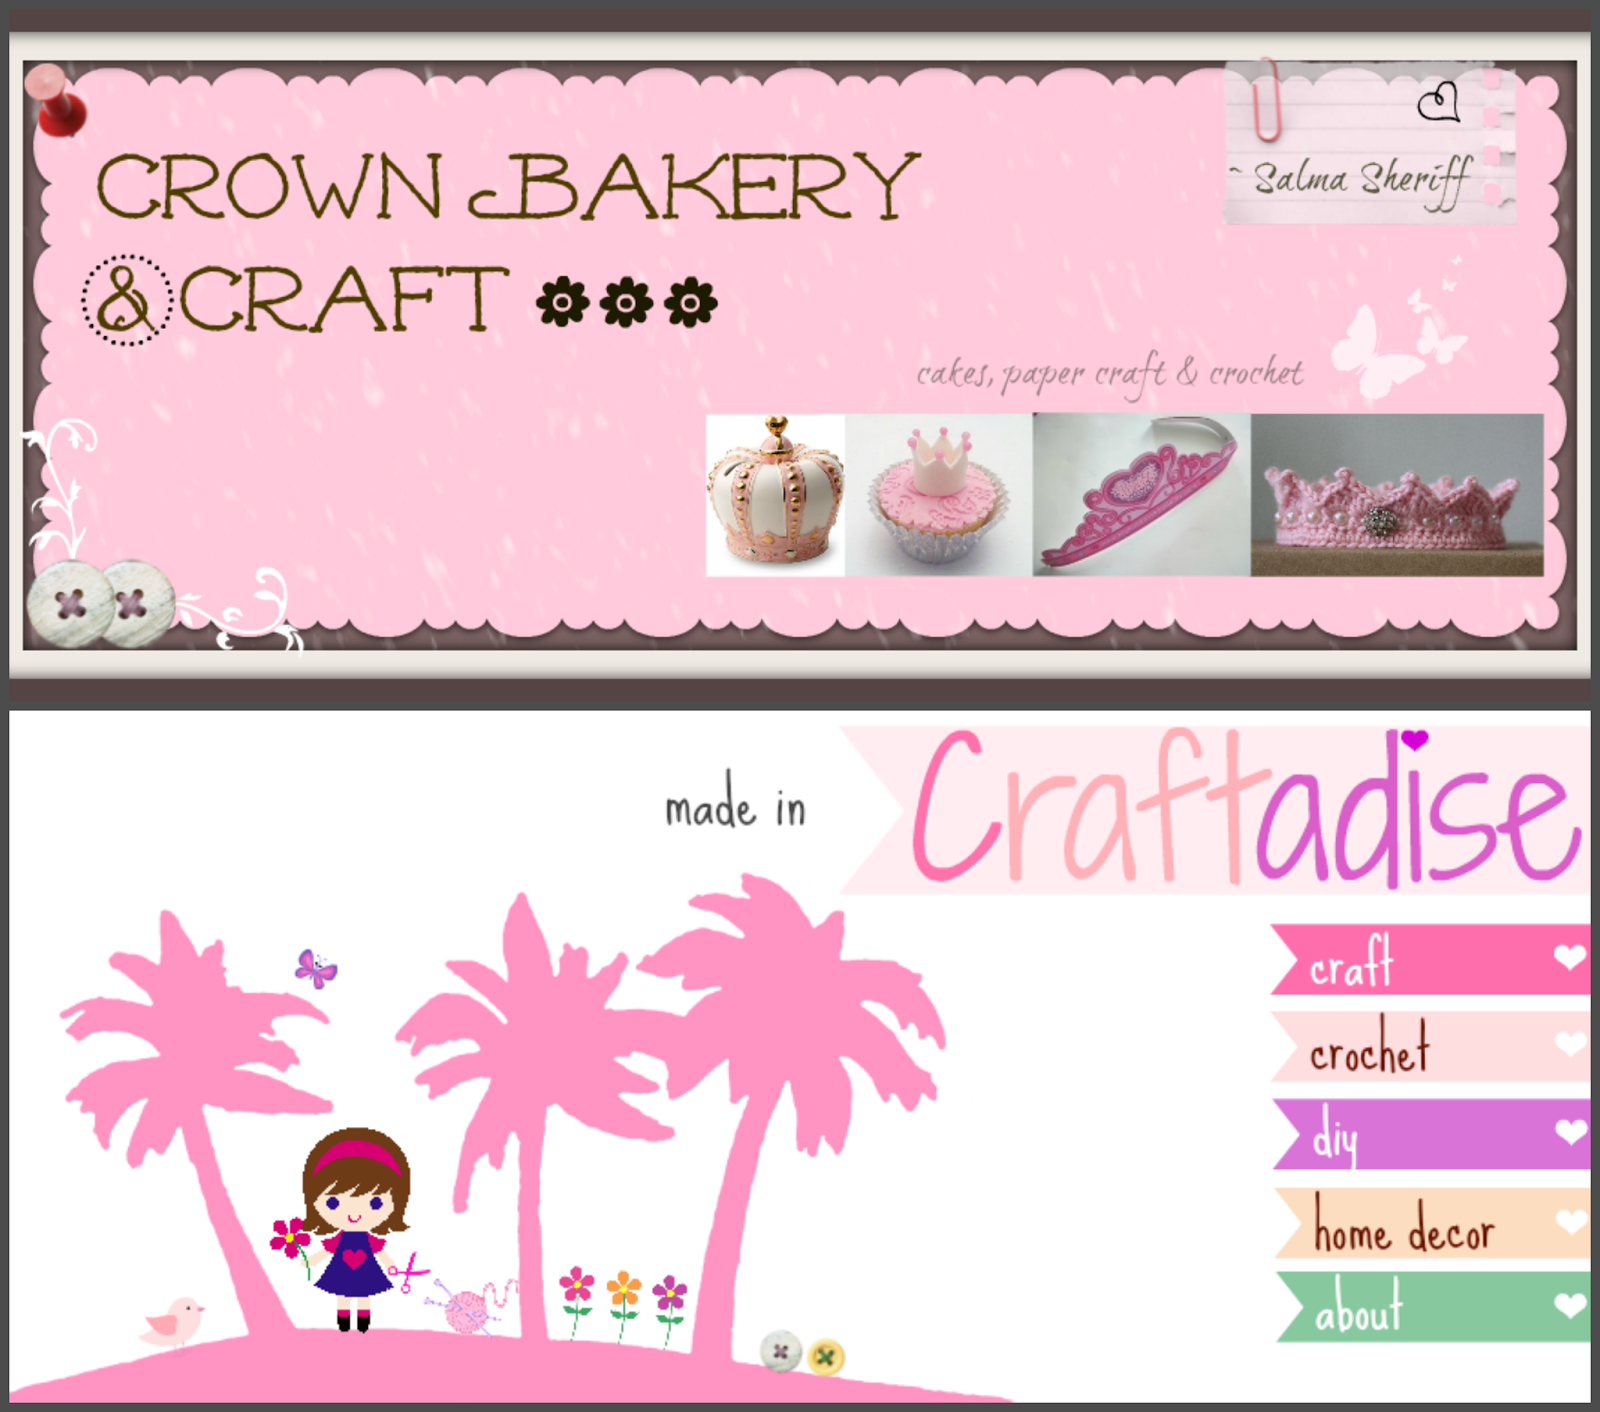 Made in craftadise, My Blogging experience so far, Blogging tips, header